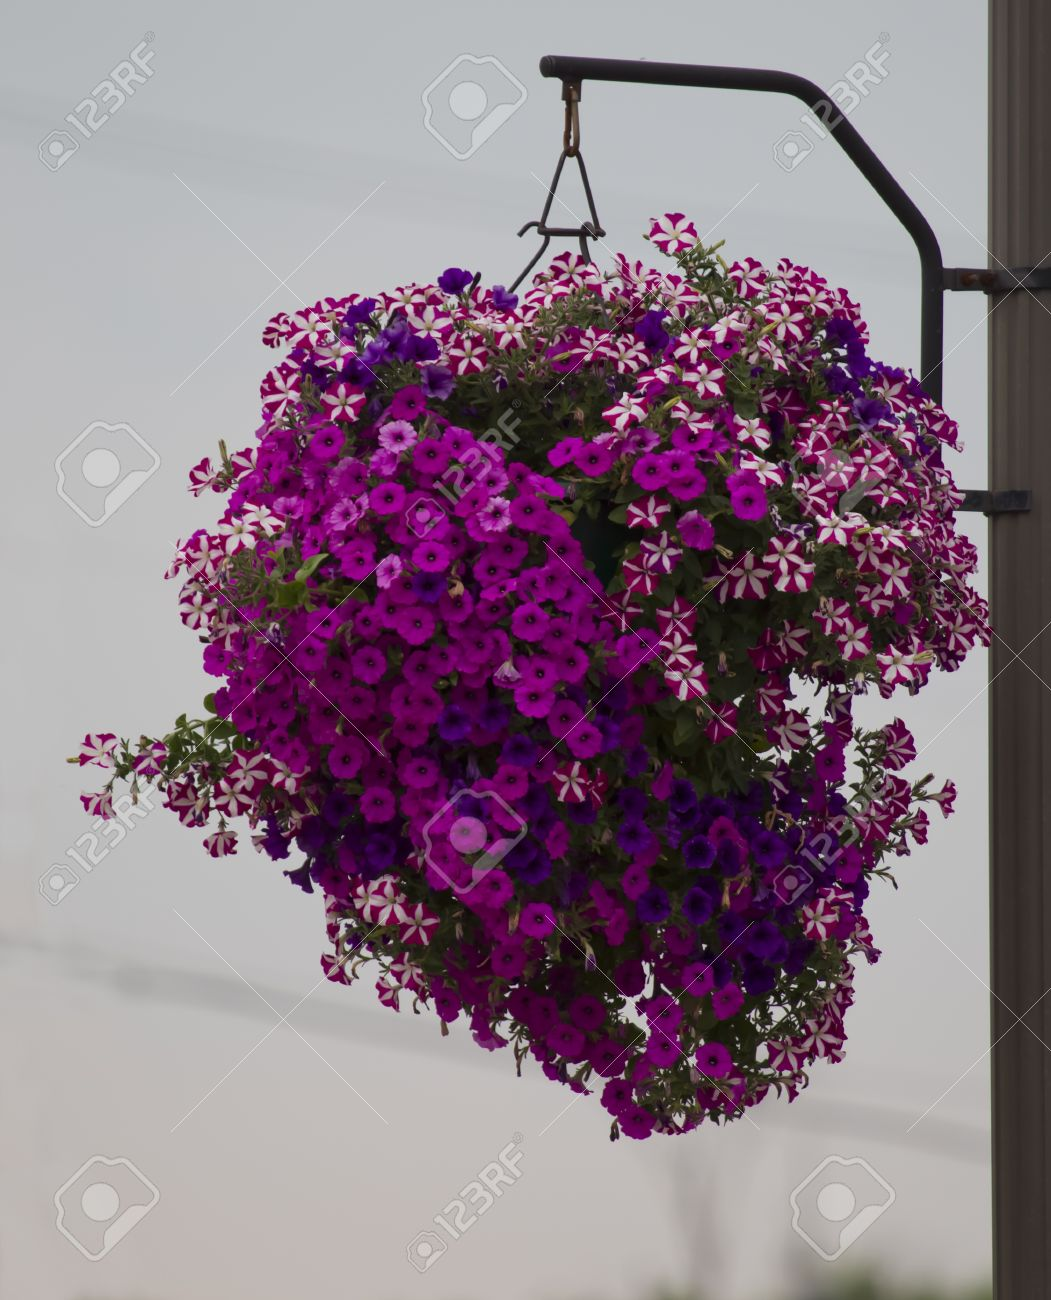 Hanging basket of purple flowers with pink in the center on a hanging basket of purple flowers with pink in the center on a city street stock mightylinksfo